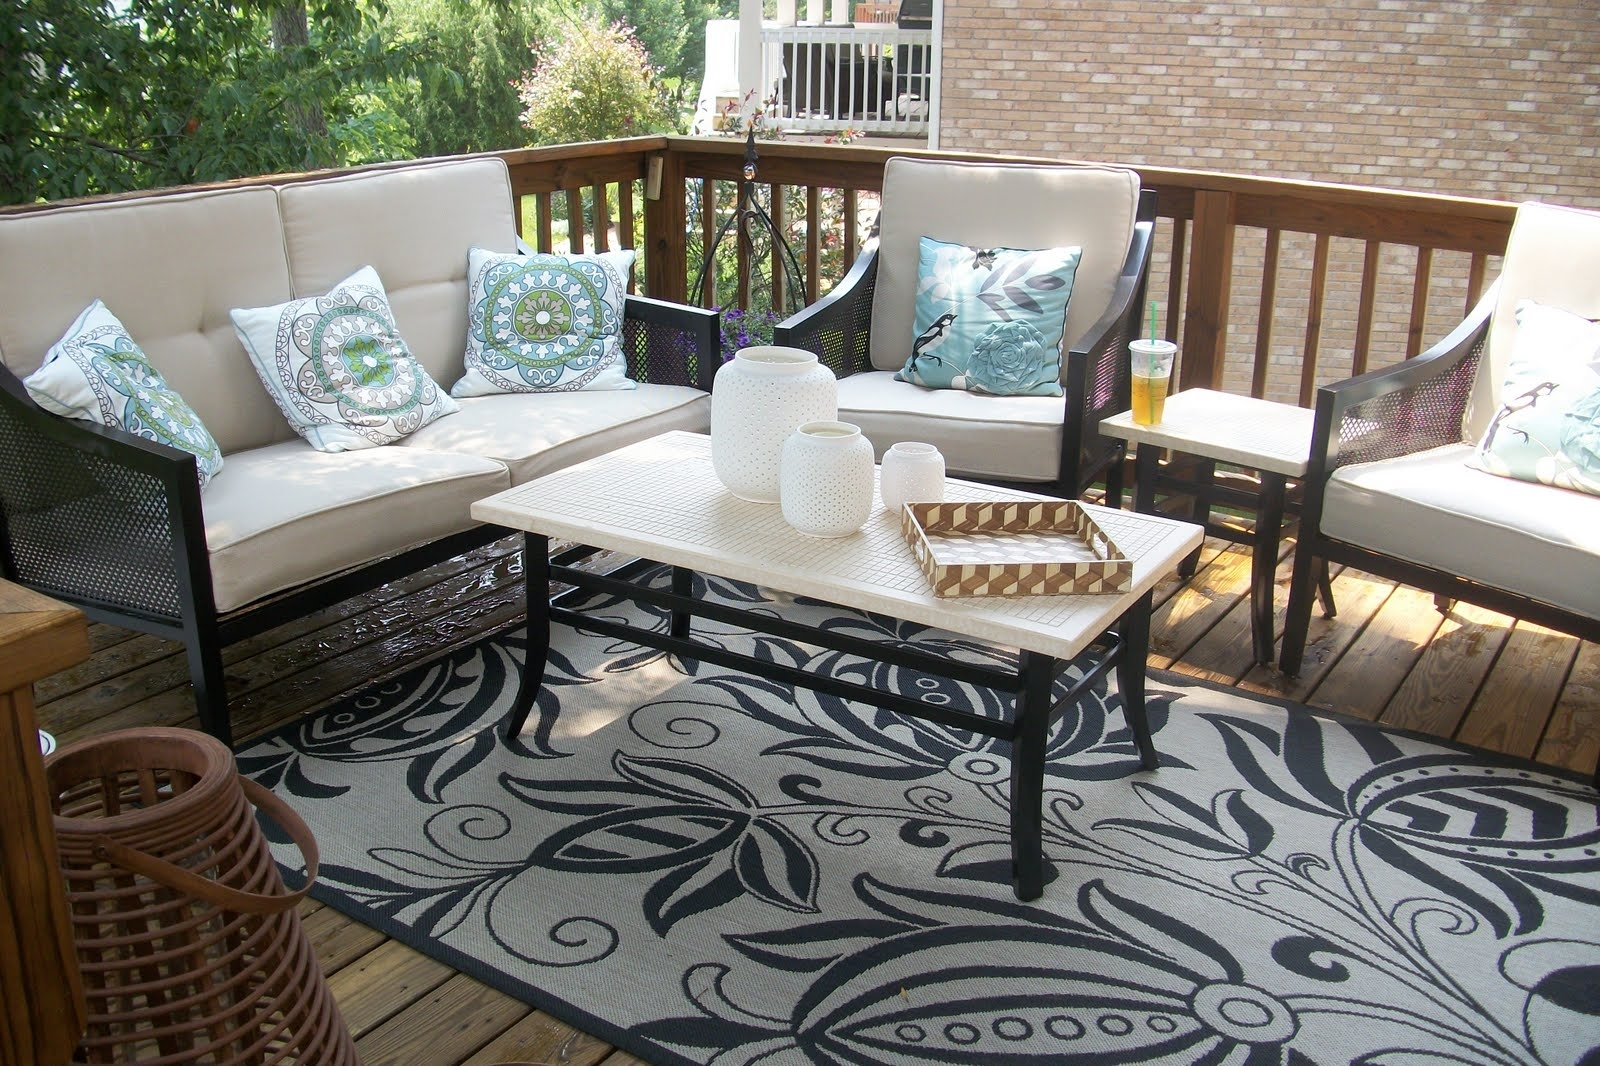 Target Patio Furniture Conversation Sets Inside Best And Newest Patio : Outdoor Patio Furniture Walmart Target Engaging Image (View 5 of 20)